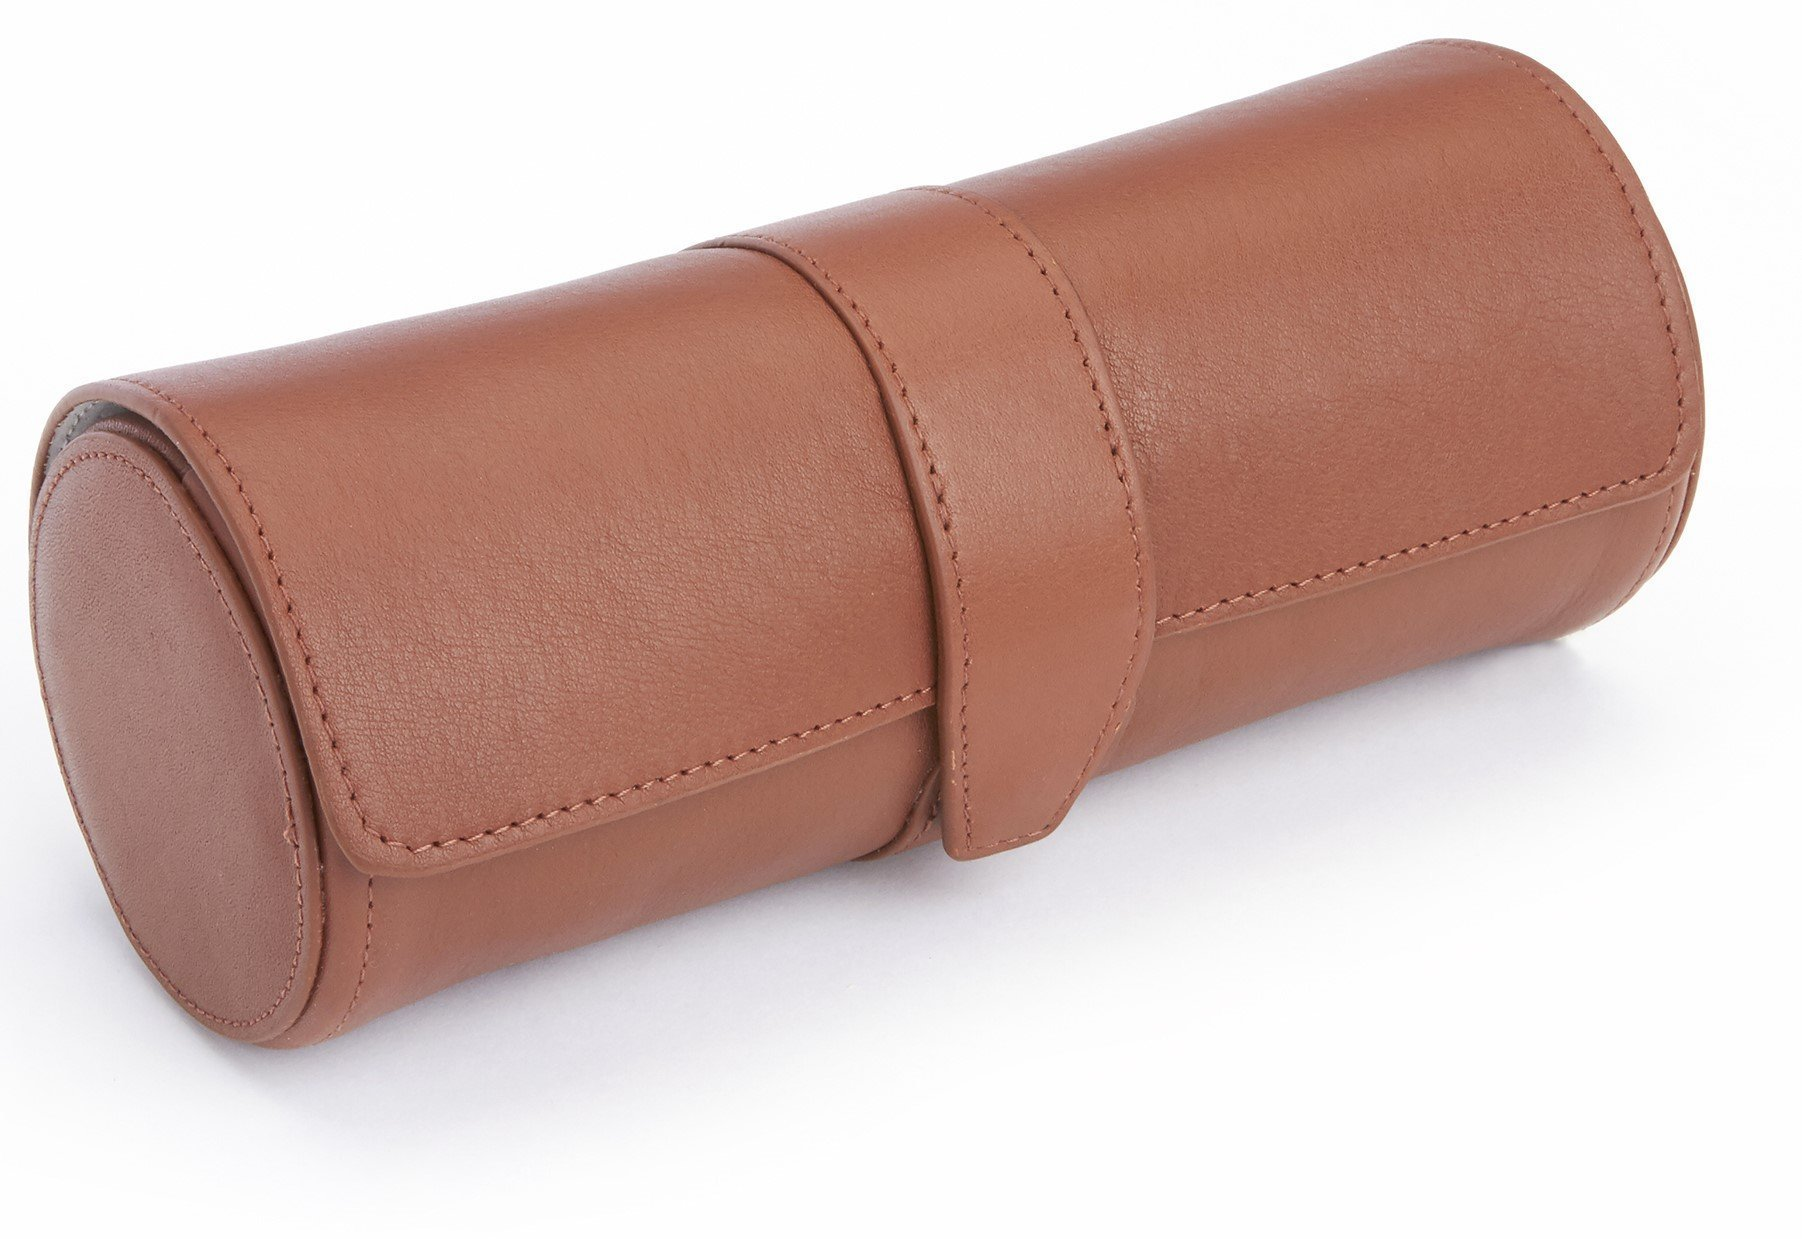 ROYCE Suede Lined Luxury Travel Watch Wall Storage, Handcrafted in Genuine Leather - Tan